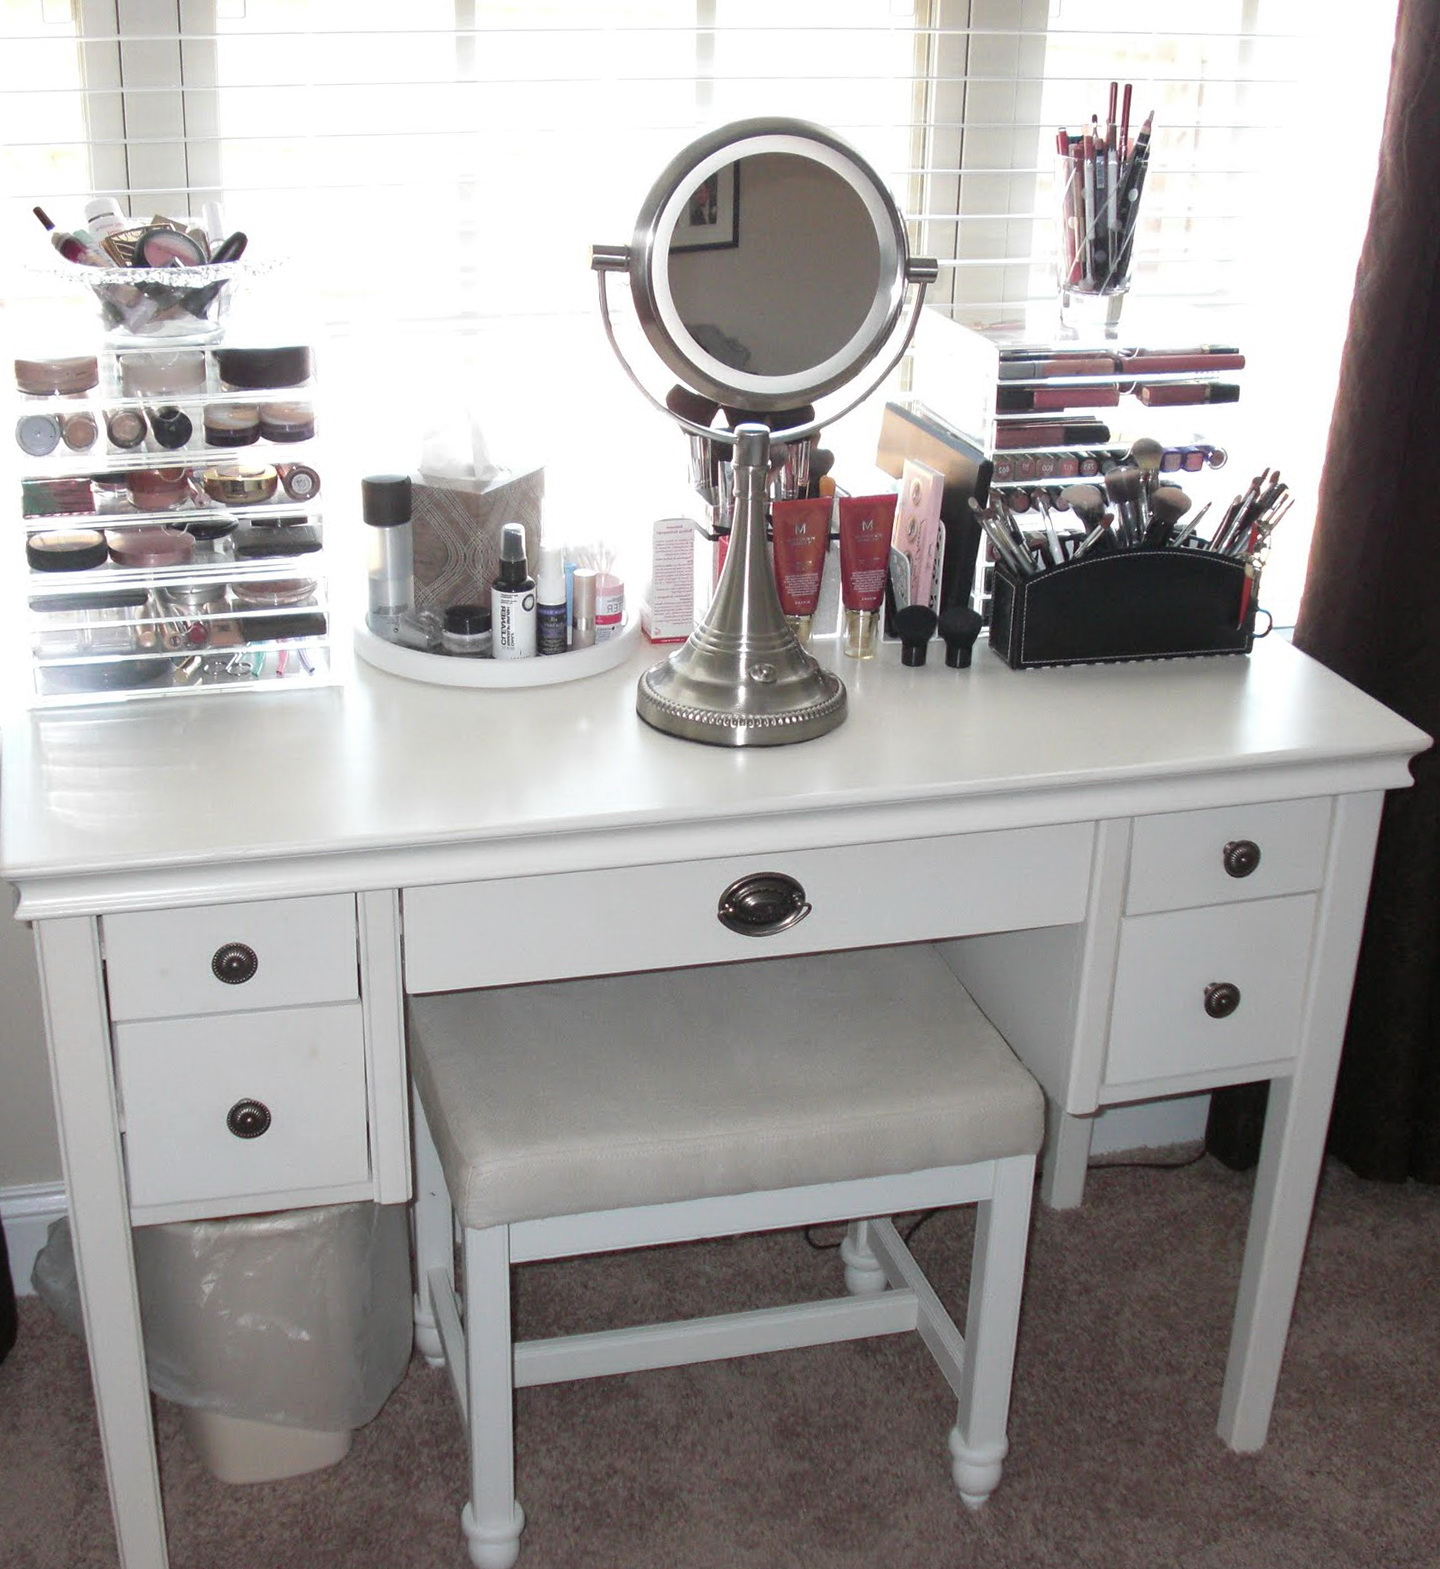 Broadway Lighted Vanity Mirror | Hollywood Vanity Mirror with Lights | Vanity Mirror Makeup